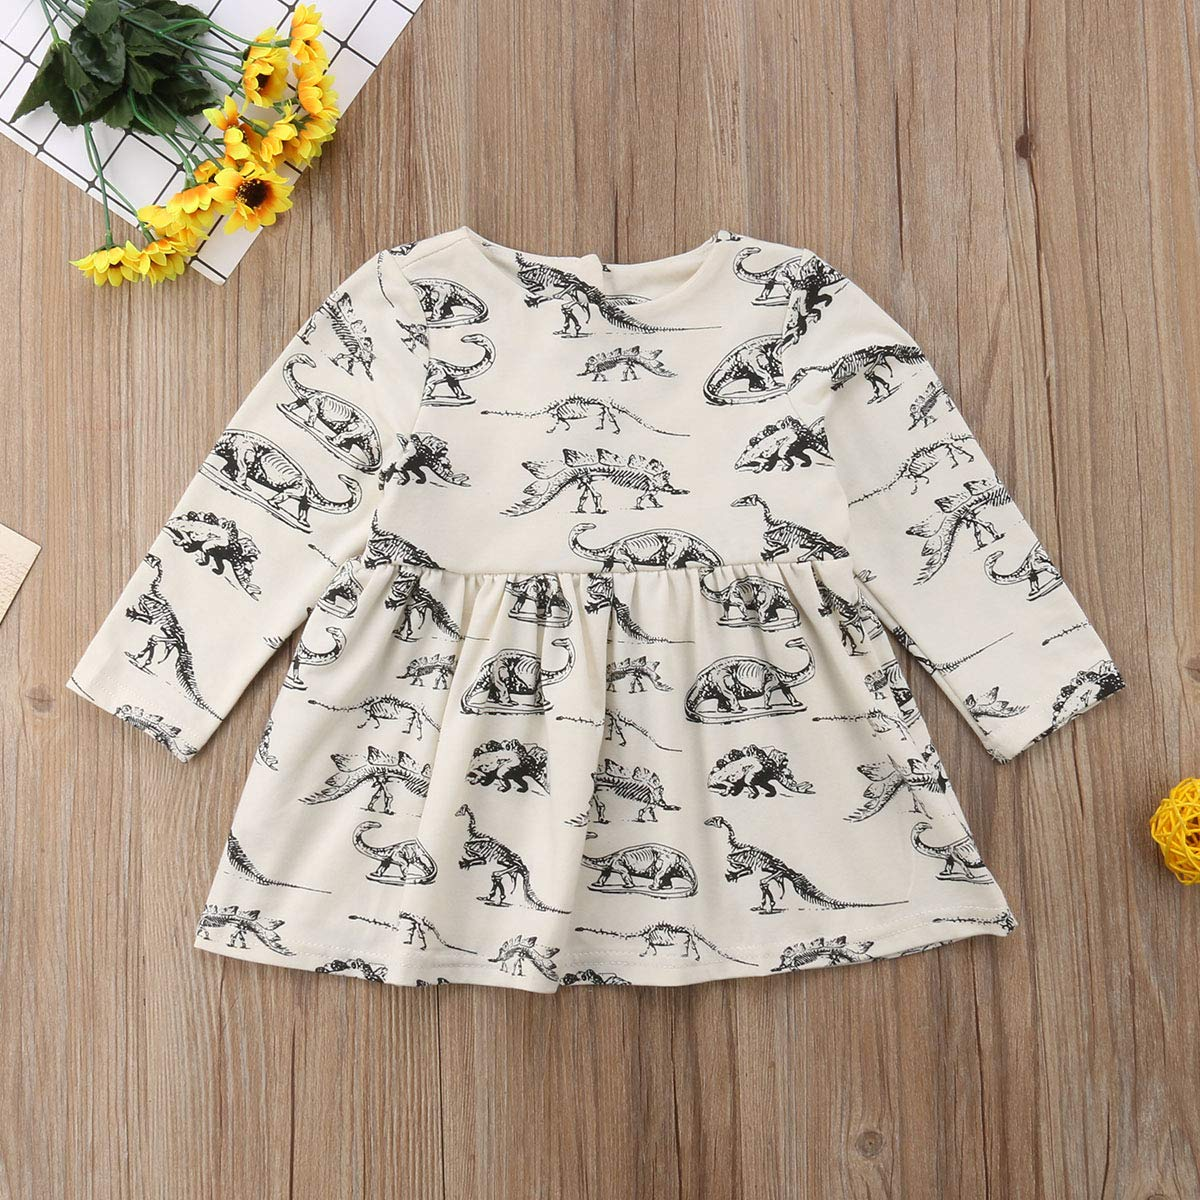 VISGOGO Infant Toddler Baby Girls Long Sleeve Dinosaur Dresses Outfits Clothes 0-3Y